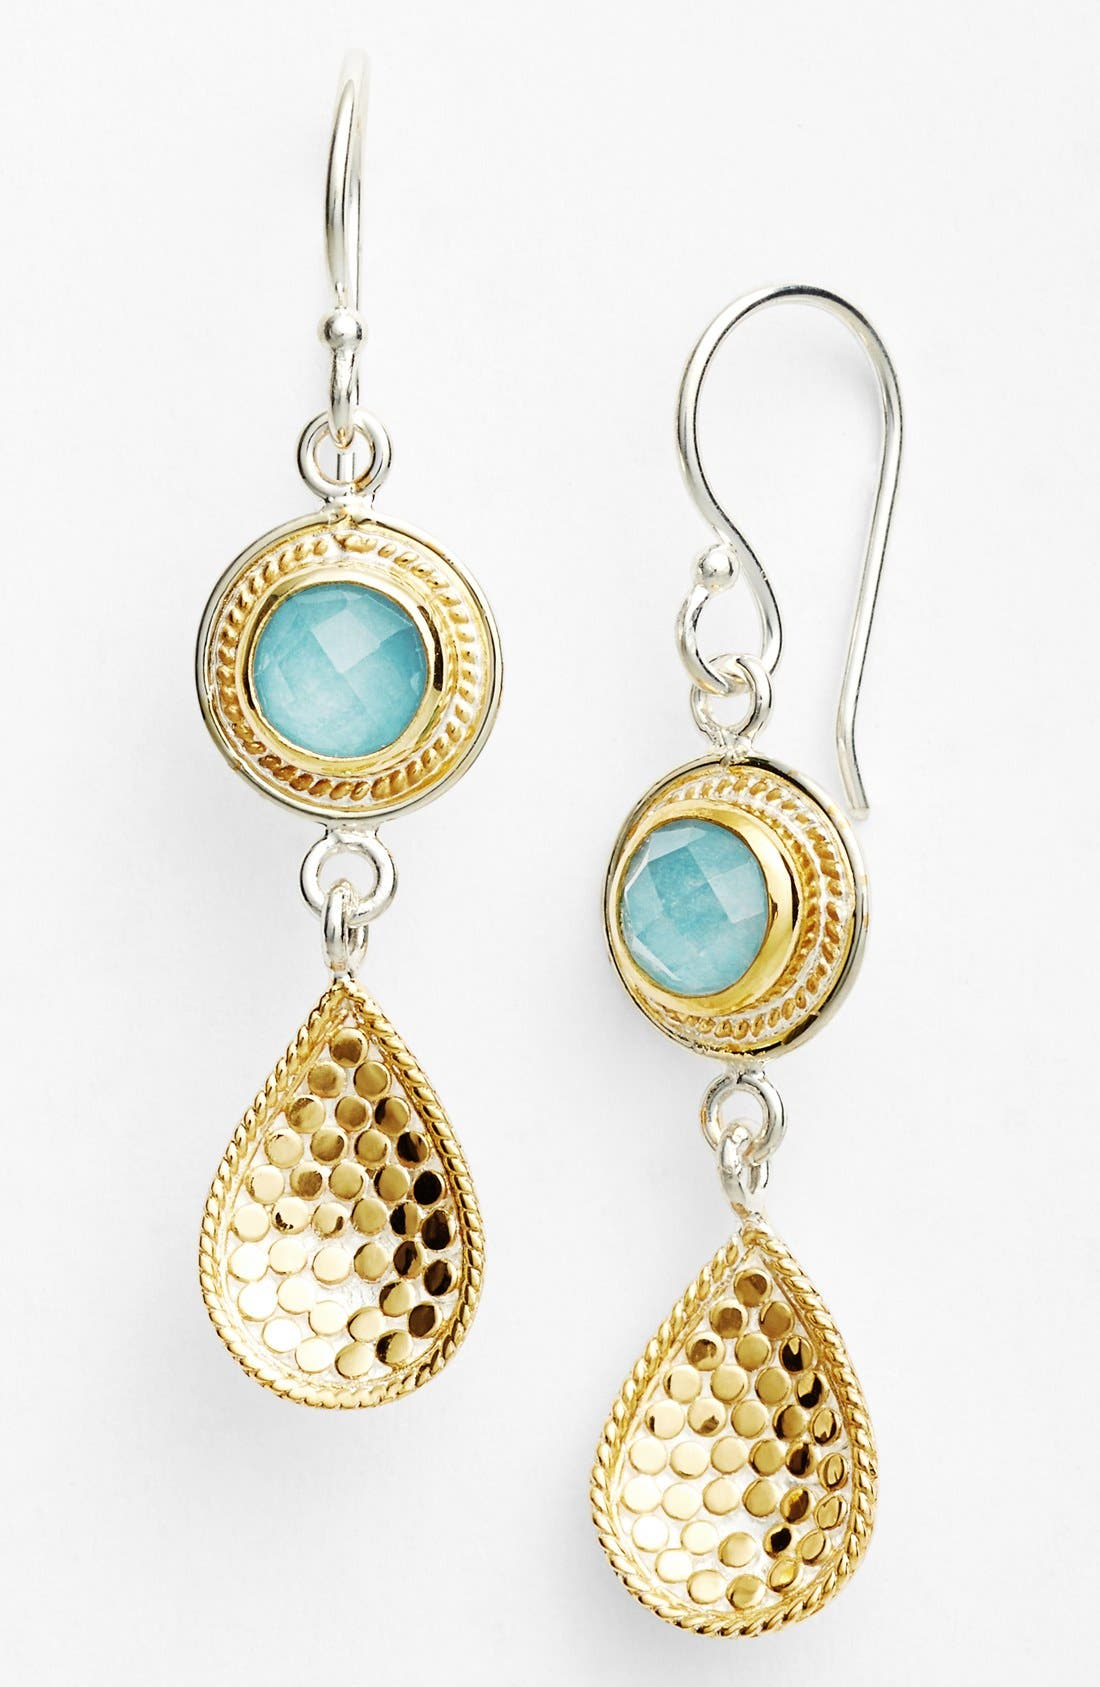 Alternate Image 1 Selected - Anna Beck 'Gili' Drop Earrings